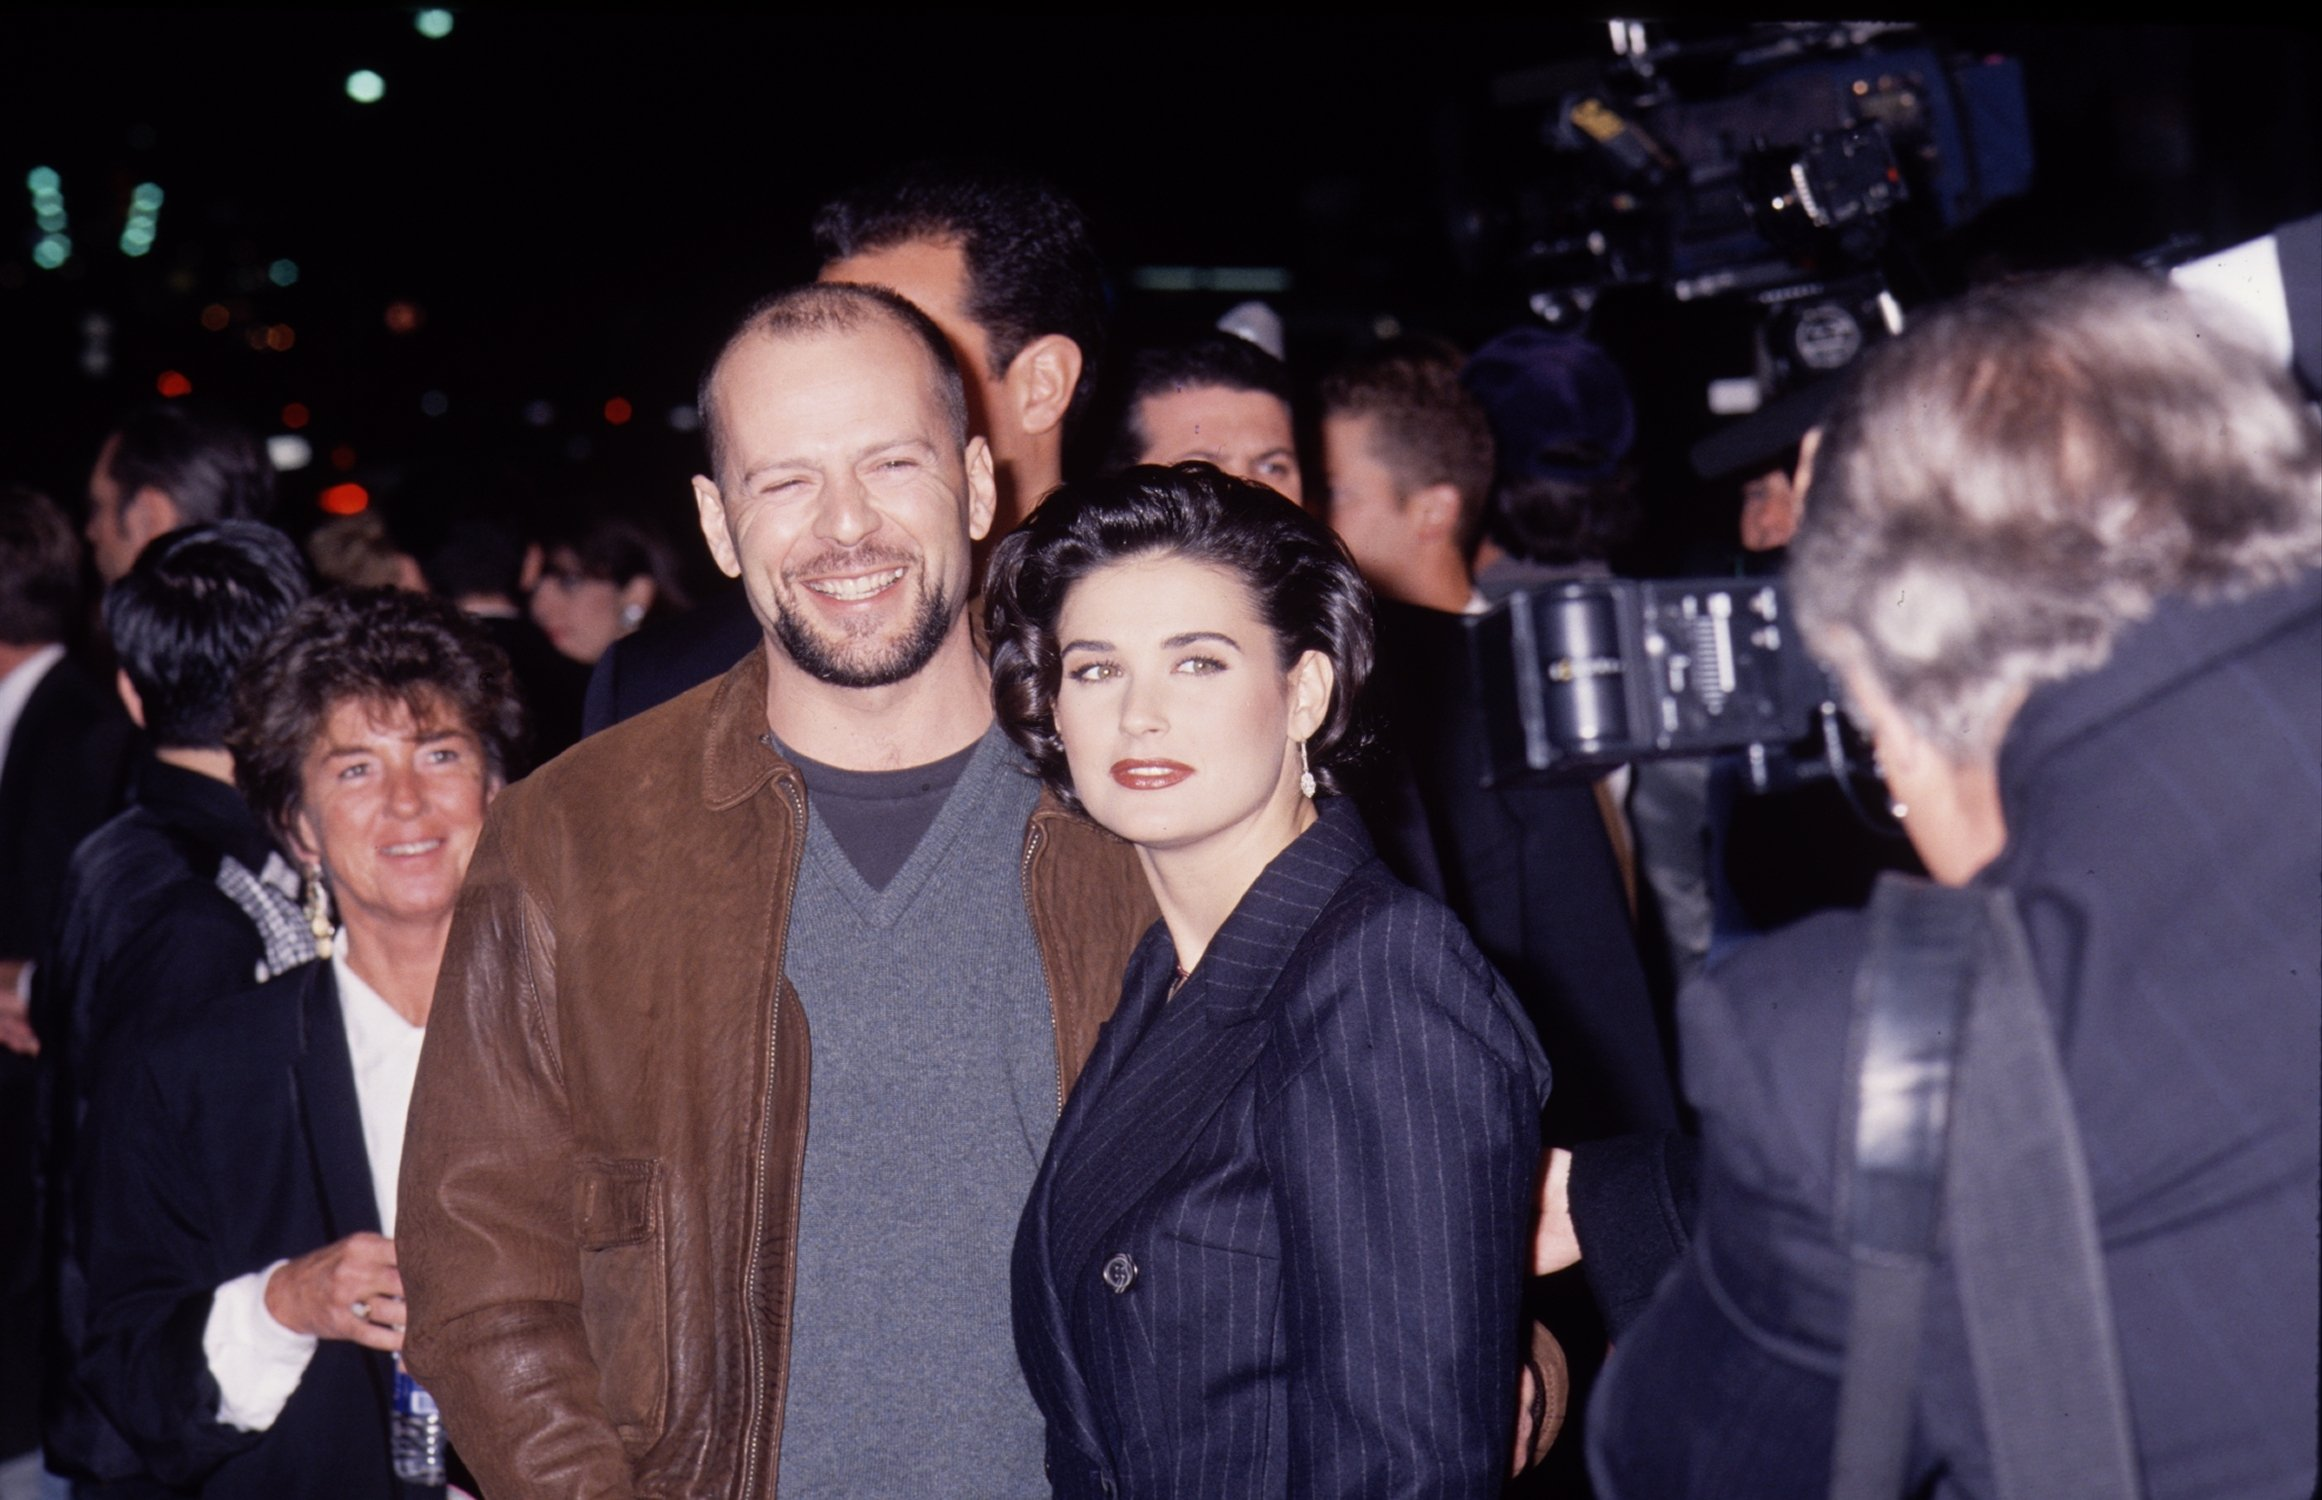 Bruce Willis and Demi Moore pictured together during their relationship. | Photo: Getty Images